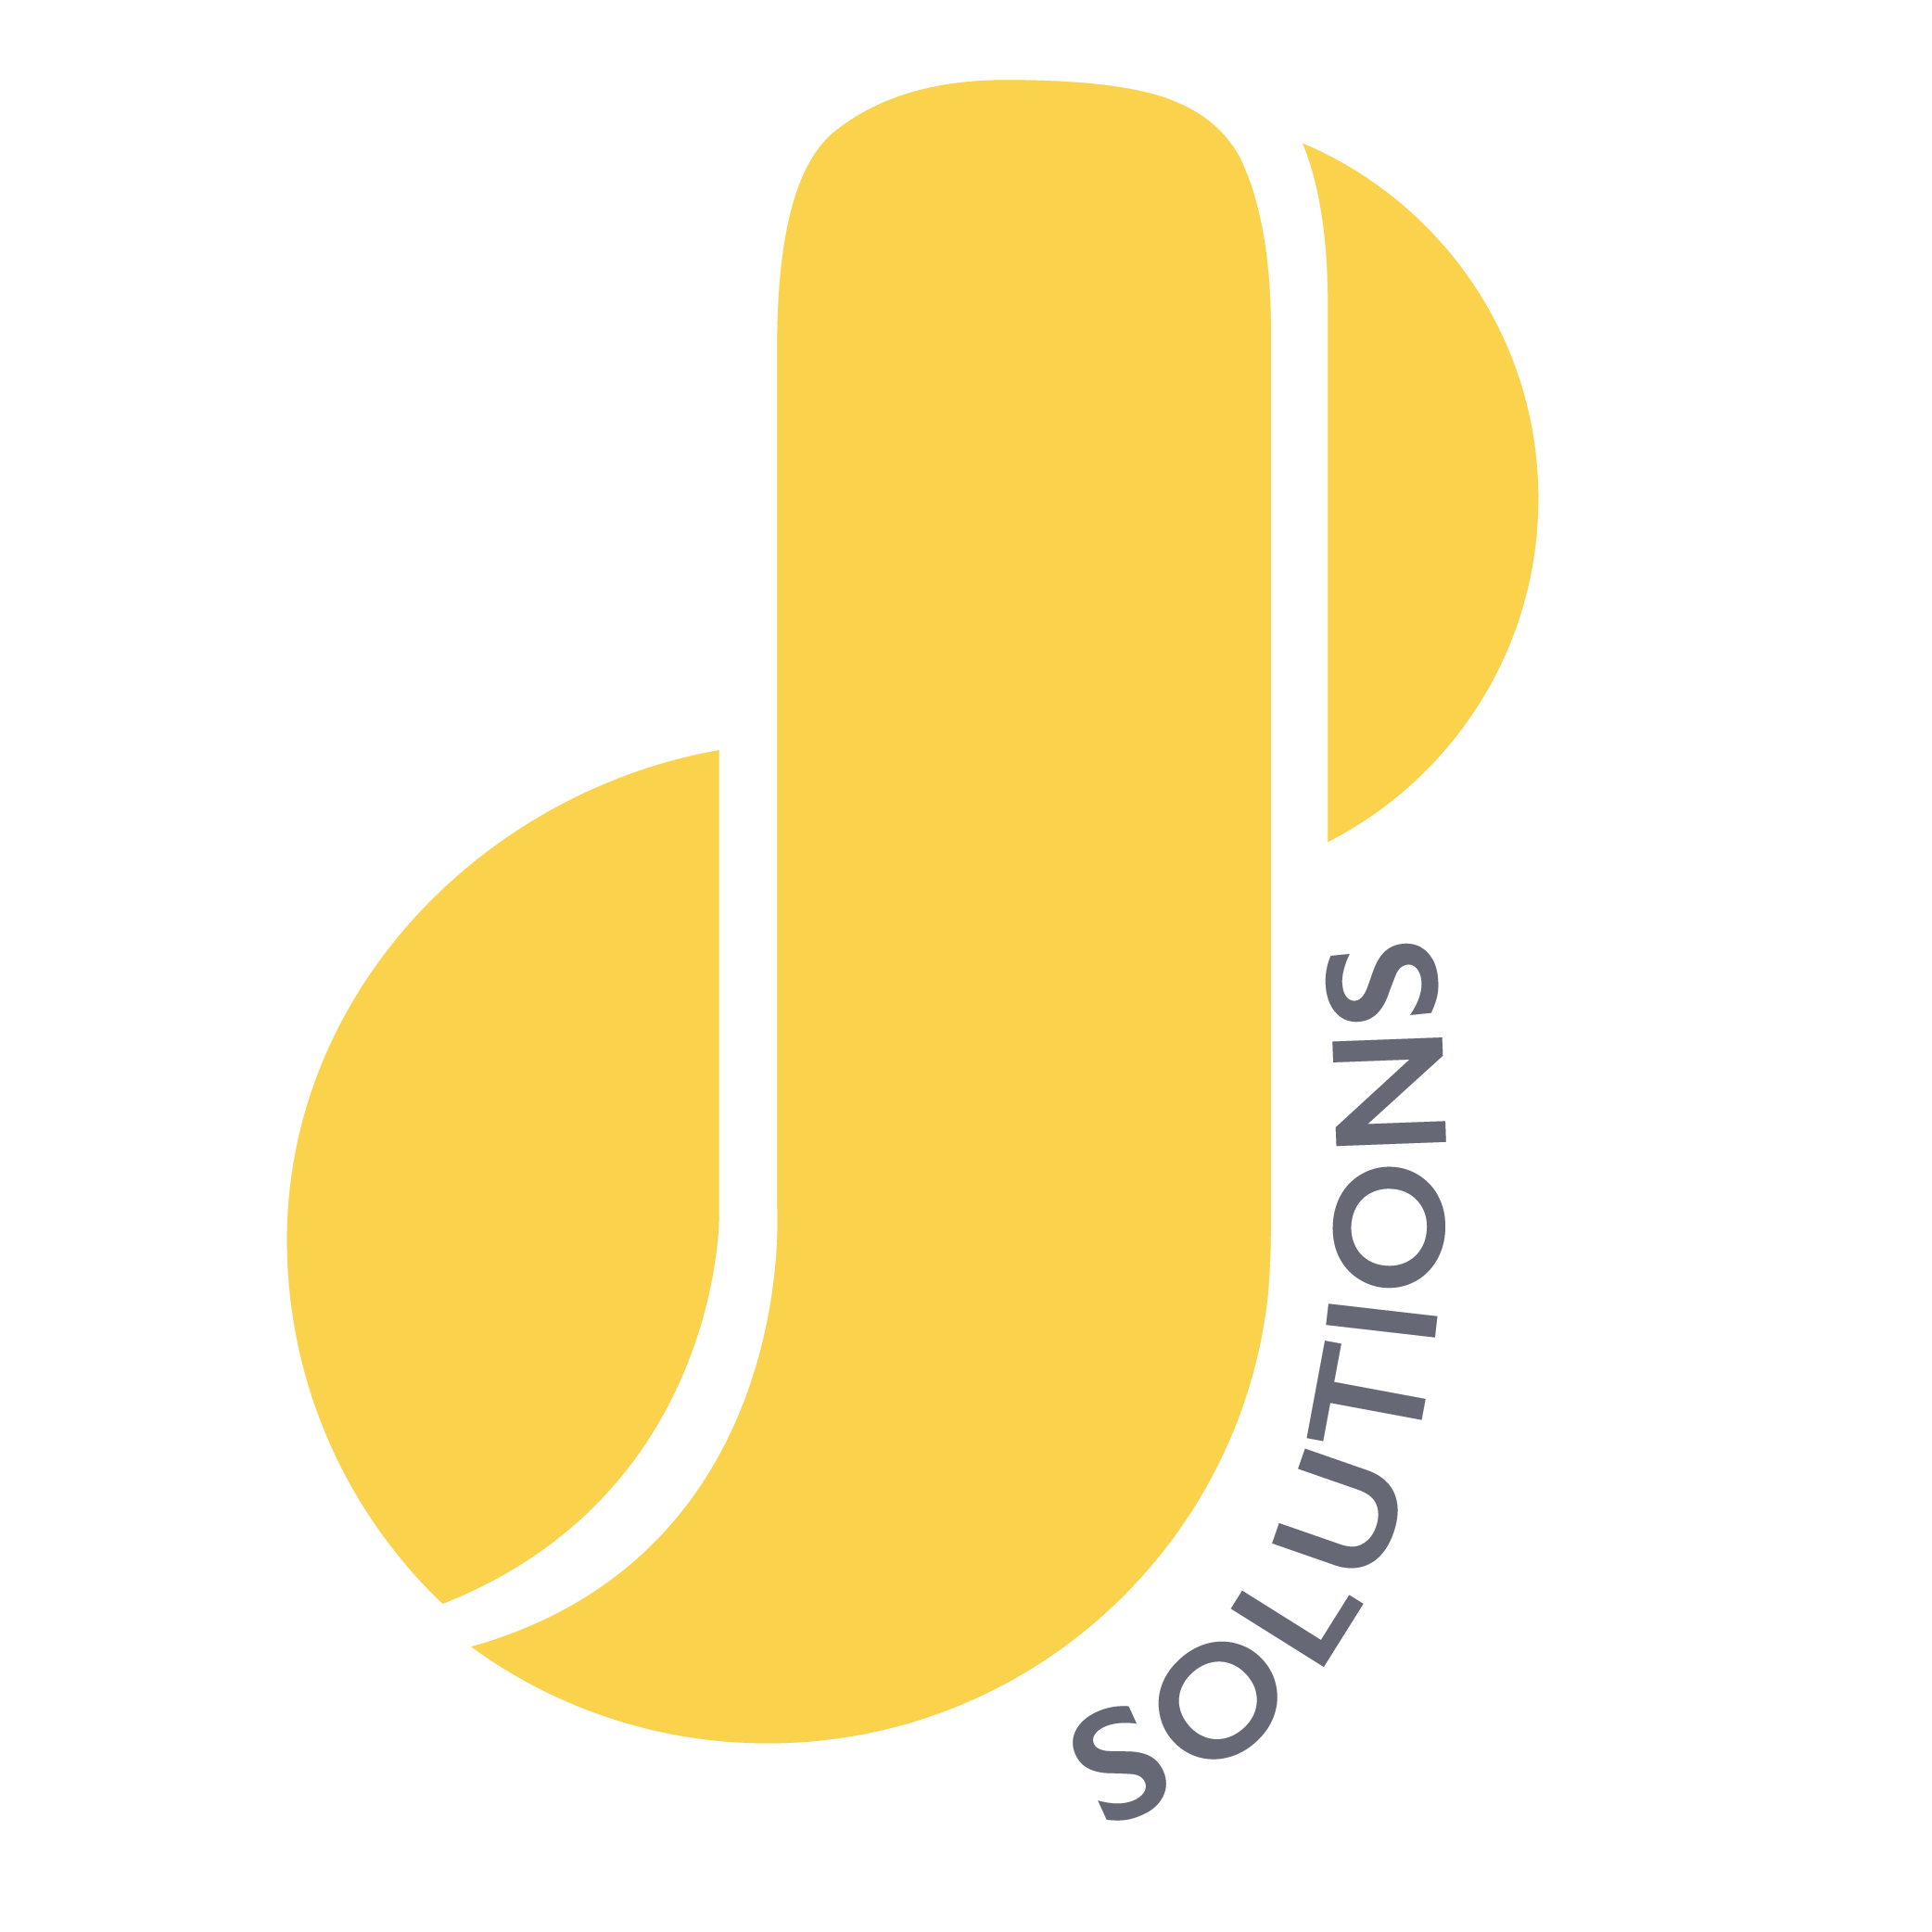 logo-jolly8solutions-vertical-no-background-text